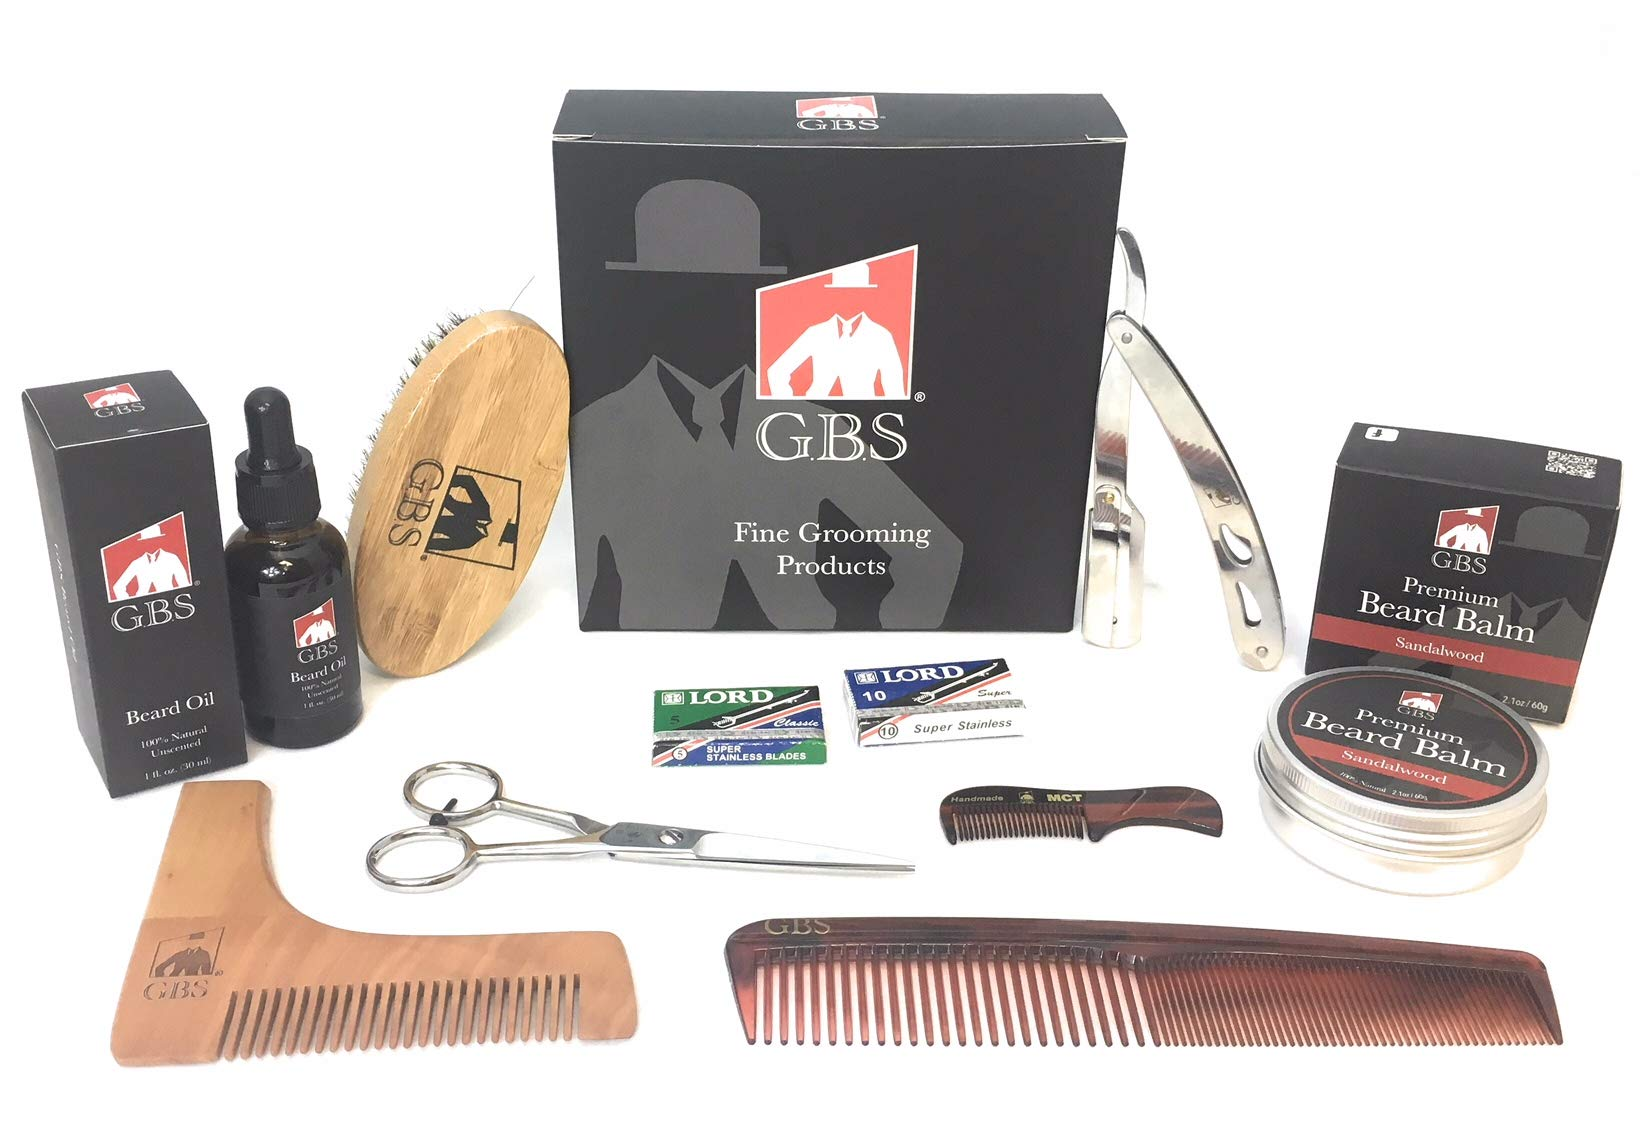 GBS Ultimate Shape and Style Beard Growth Grooming Kit - Beard Oil, Beard Balm, Brush, Barber Scissors,Template comb, Beard Comb, Straight Edge Shavette Razor, Mustache Comb + Blades!